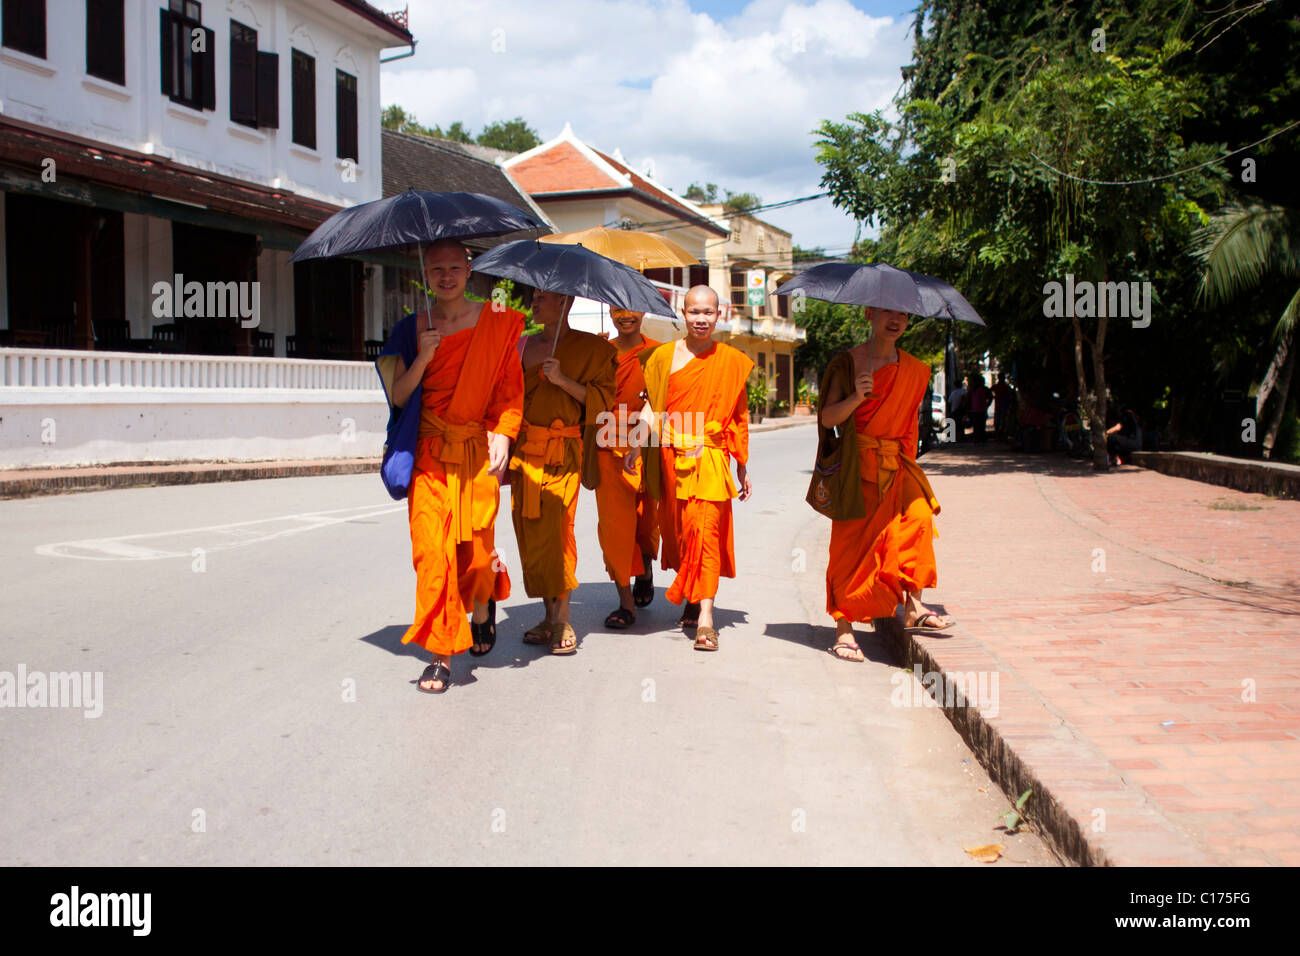 Monks on the streets of Luang Prabang, Laos, Asia - Stock Image